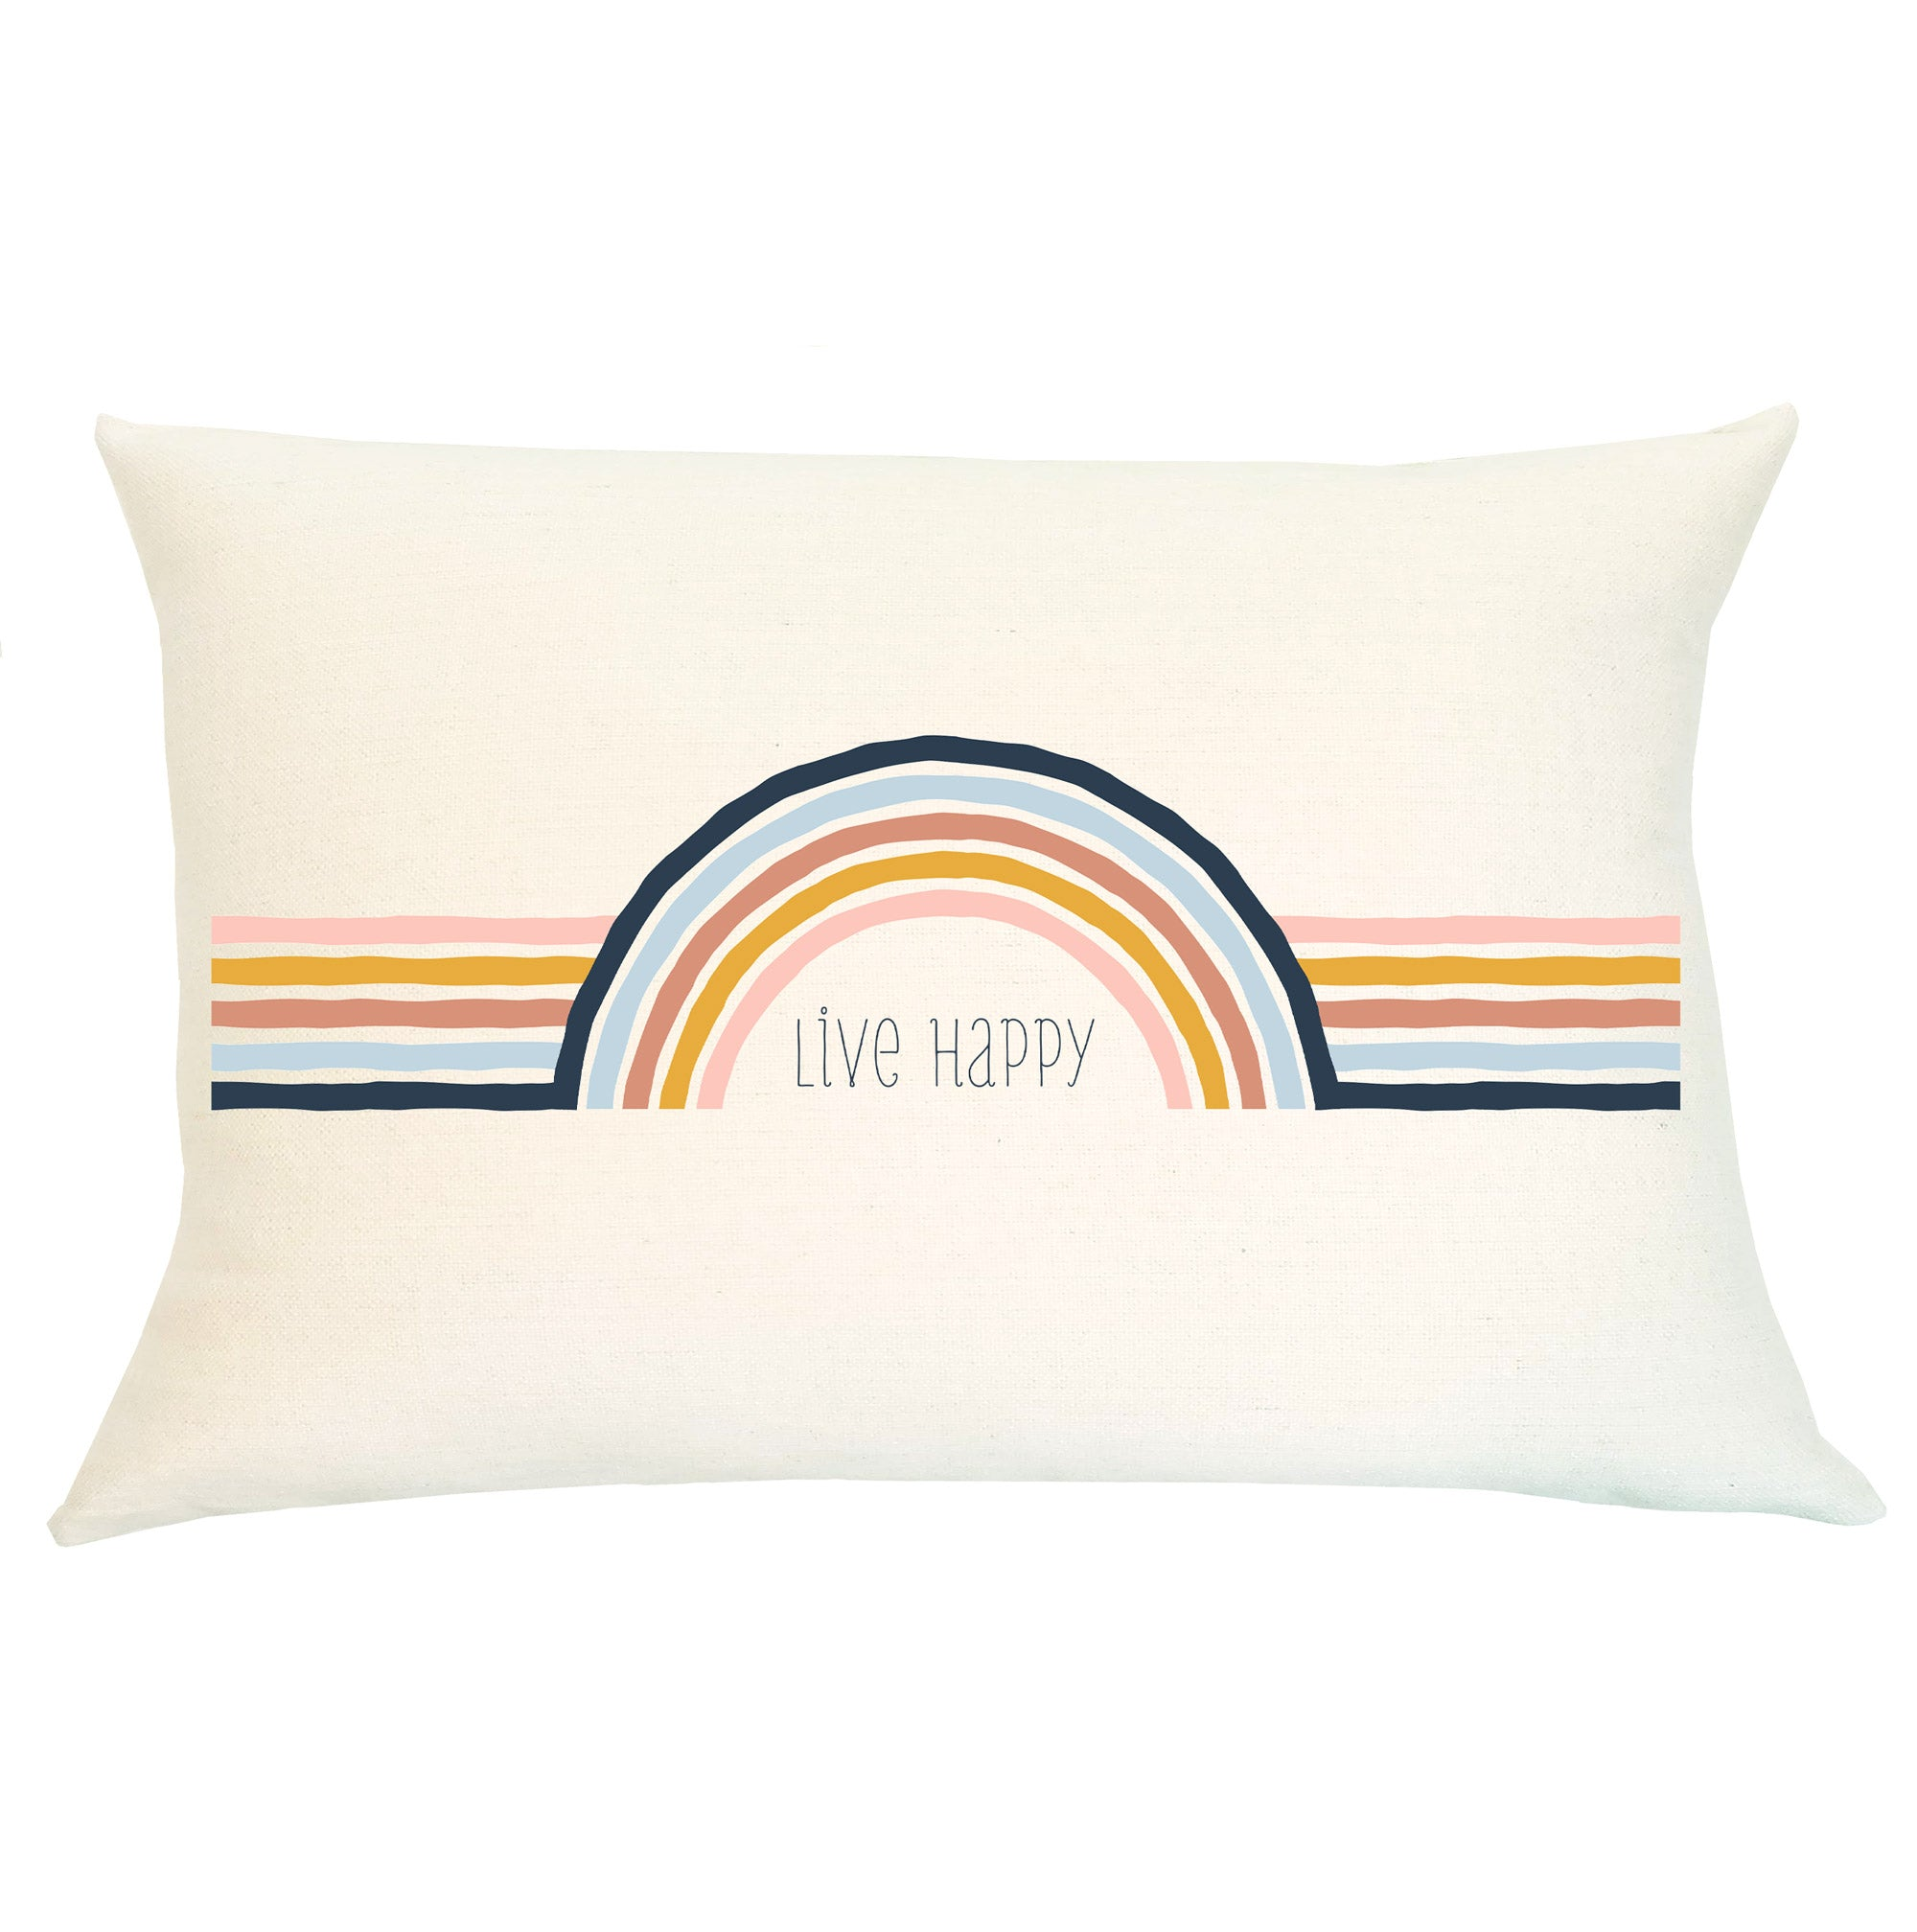 Pillow Lumbar - Live Happy - Insert Included